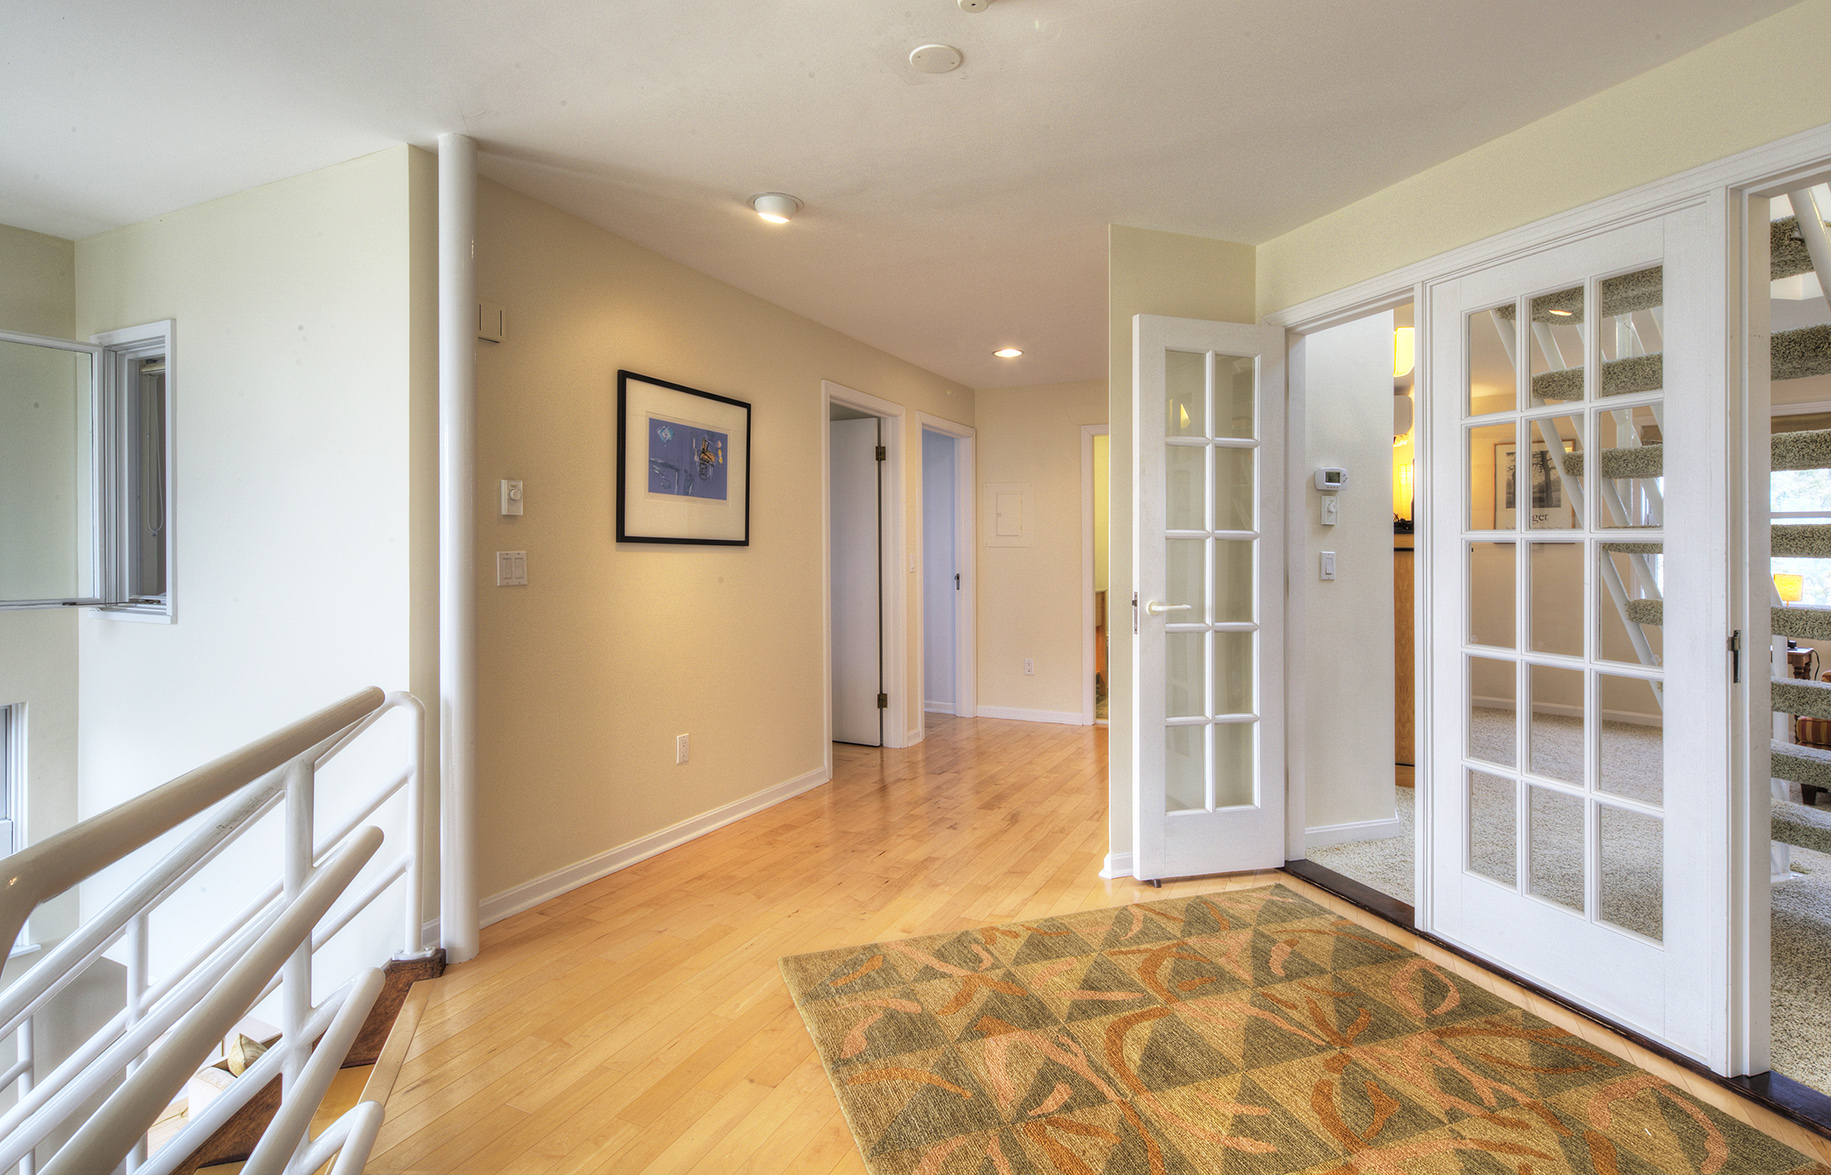 Additional photo for property listing at Unique Ocean View Contemporary 21 Atlantic Avenue Newport, Rhode Island 02840 United States